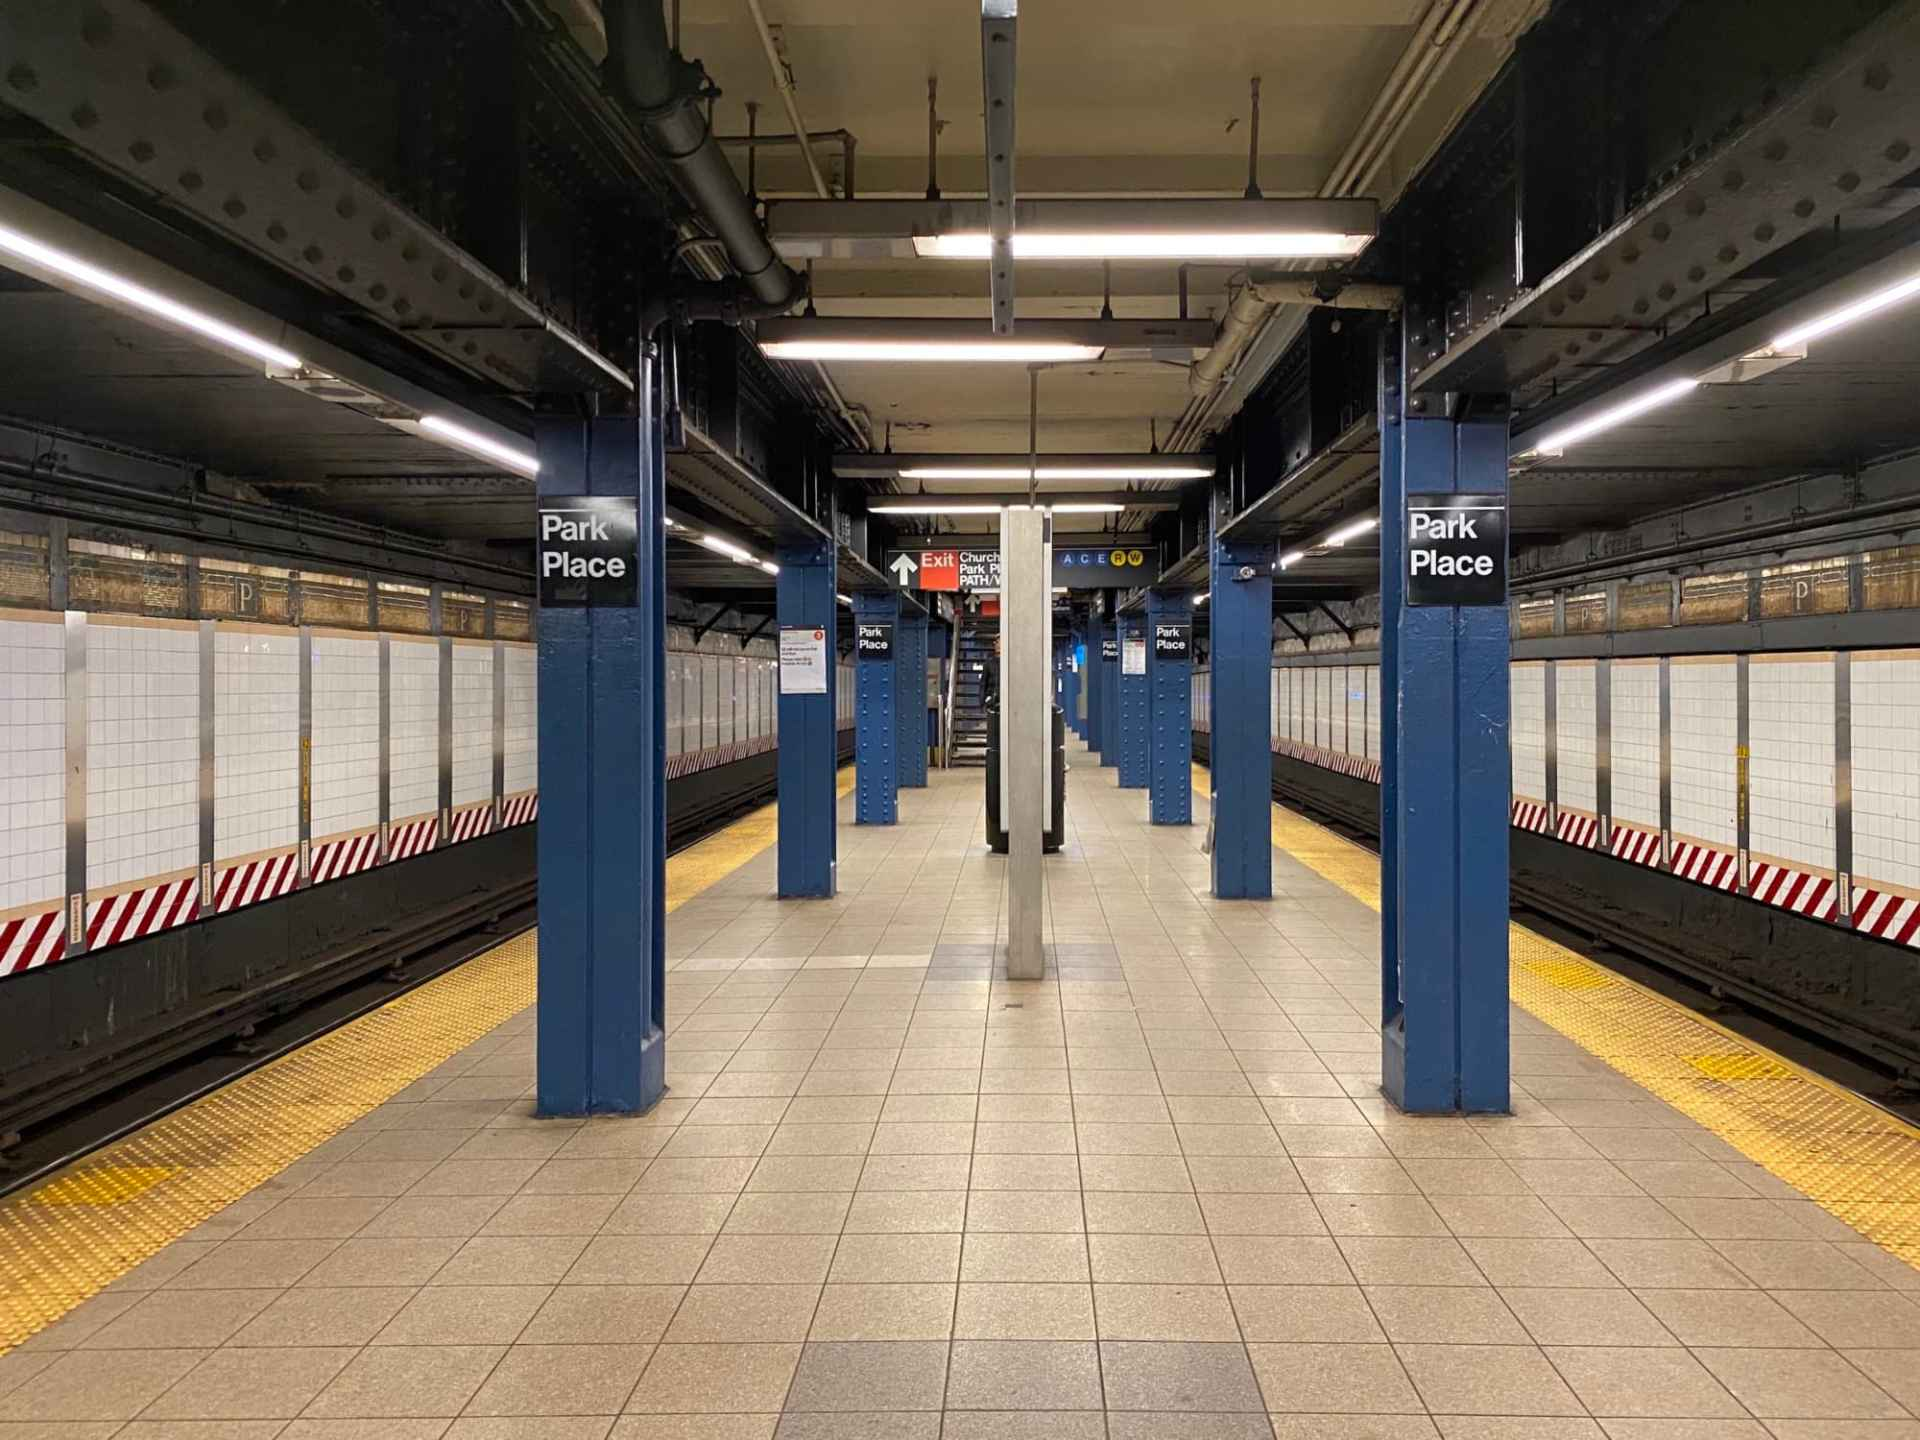 NYC Public Transport Guide: Getting Around New York City